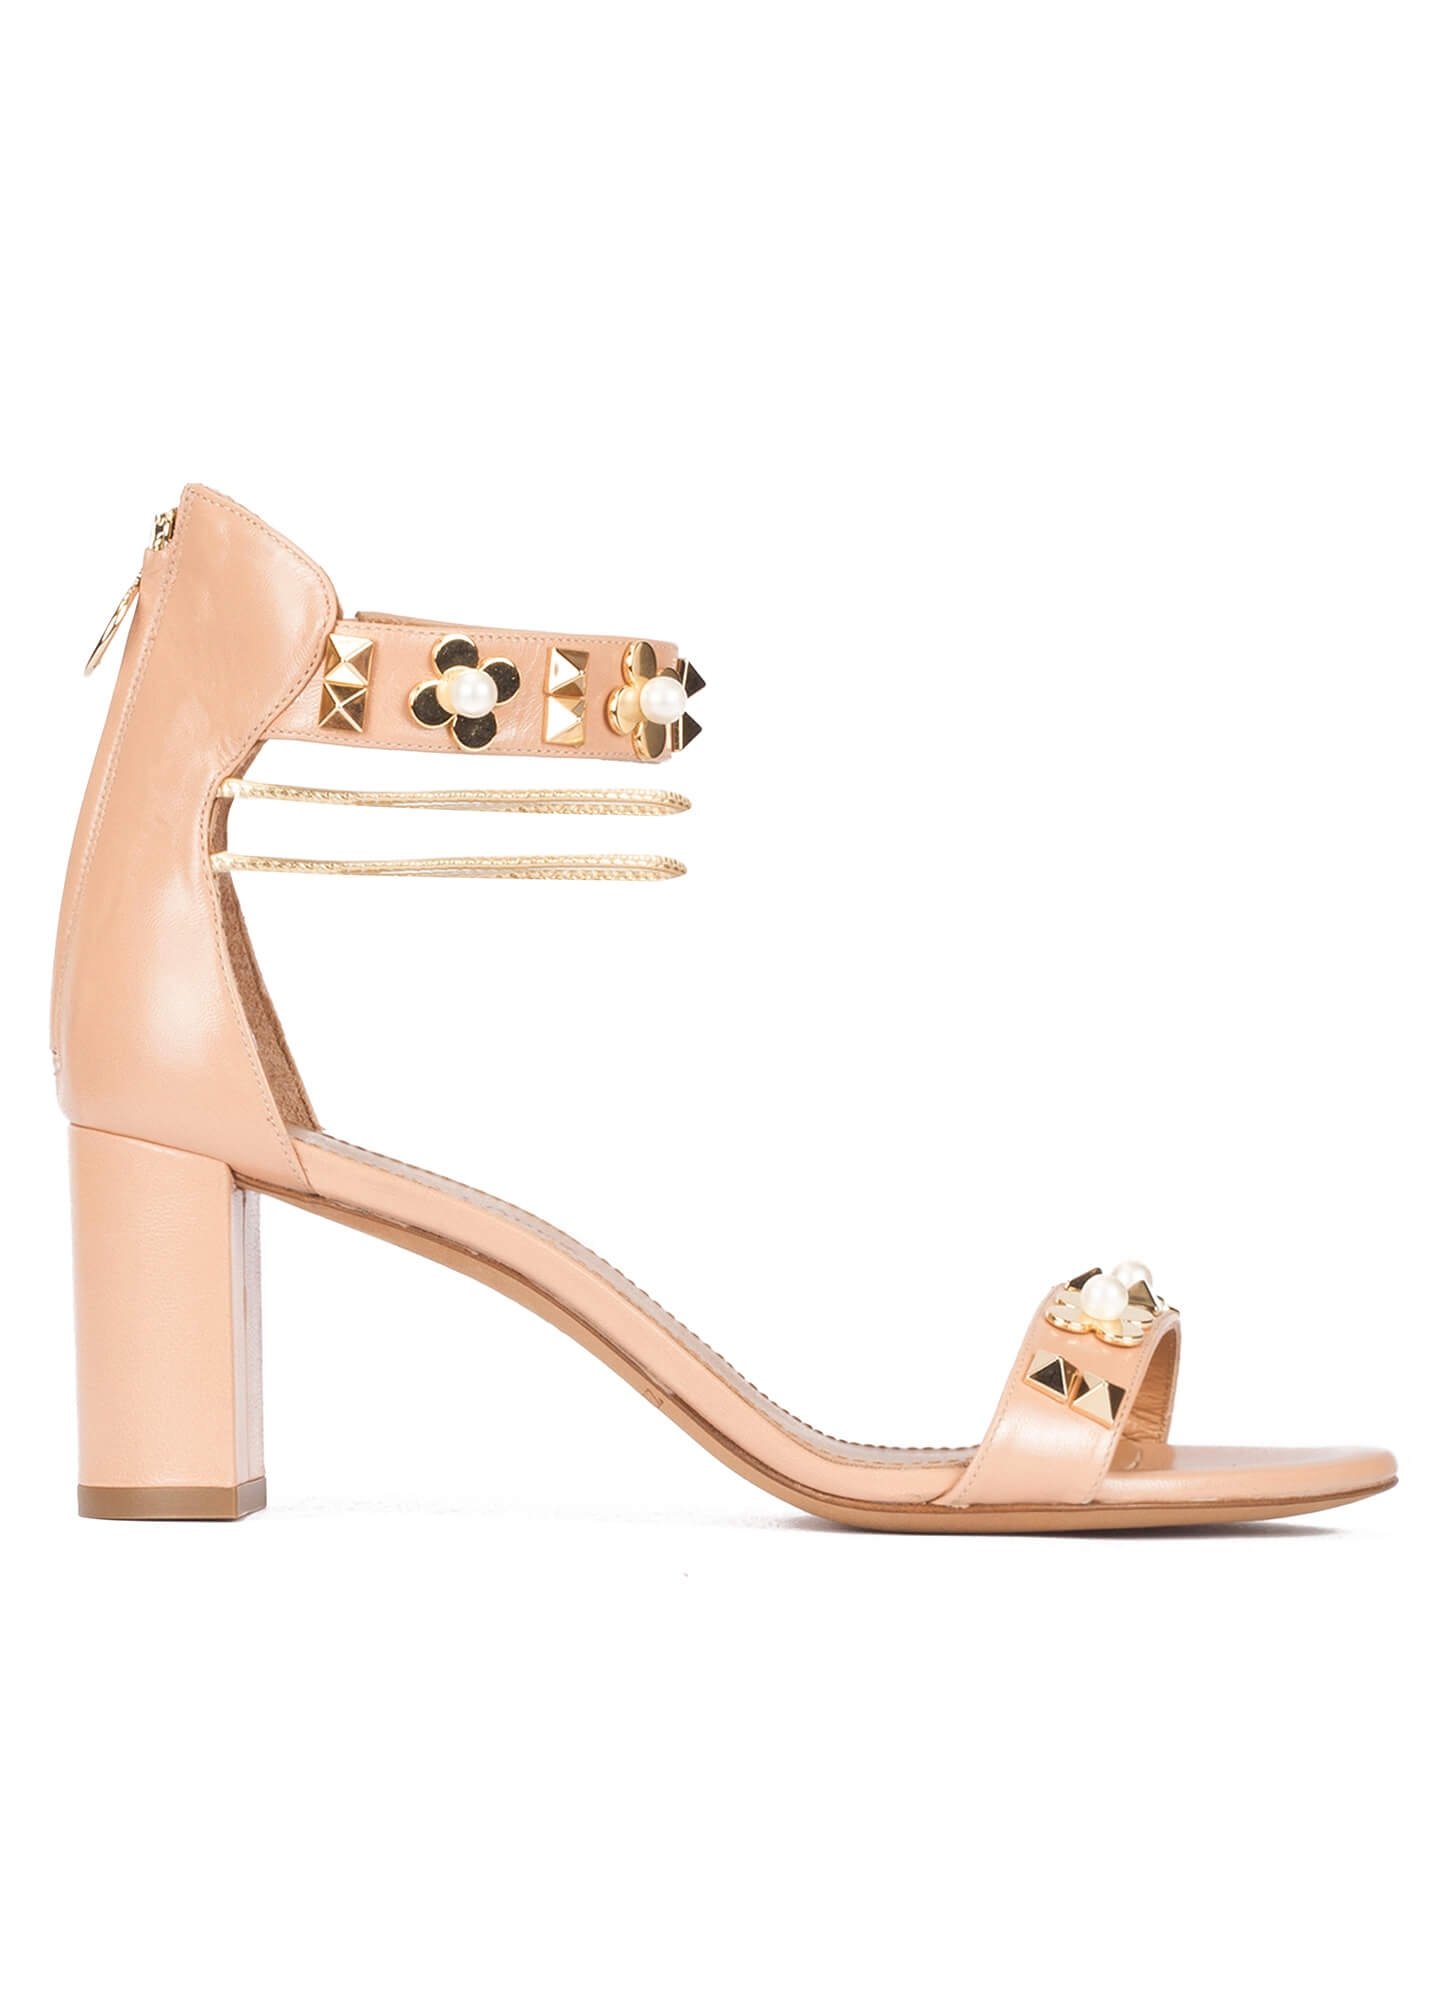 fc2a536fba9c Orabela Pura López. Mid block heel sandals in nude leather with flower  trims ...